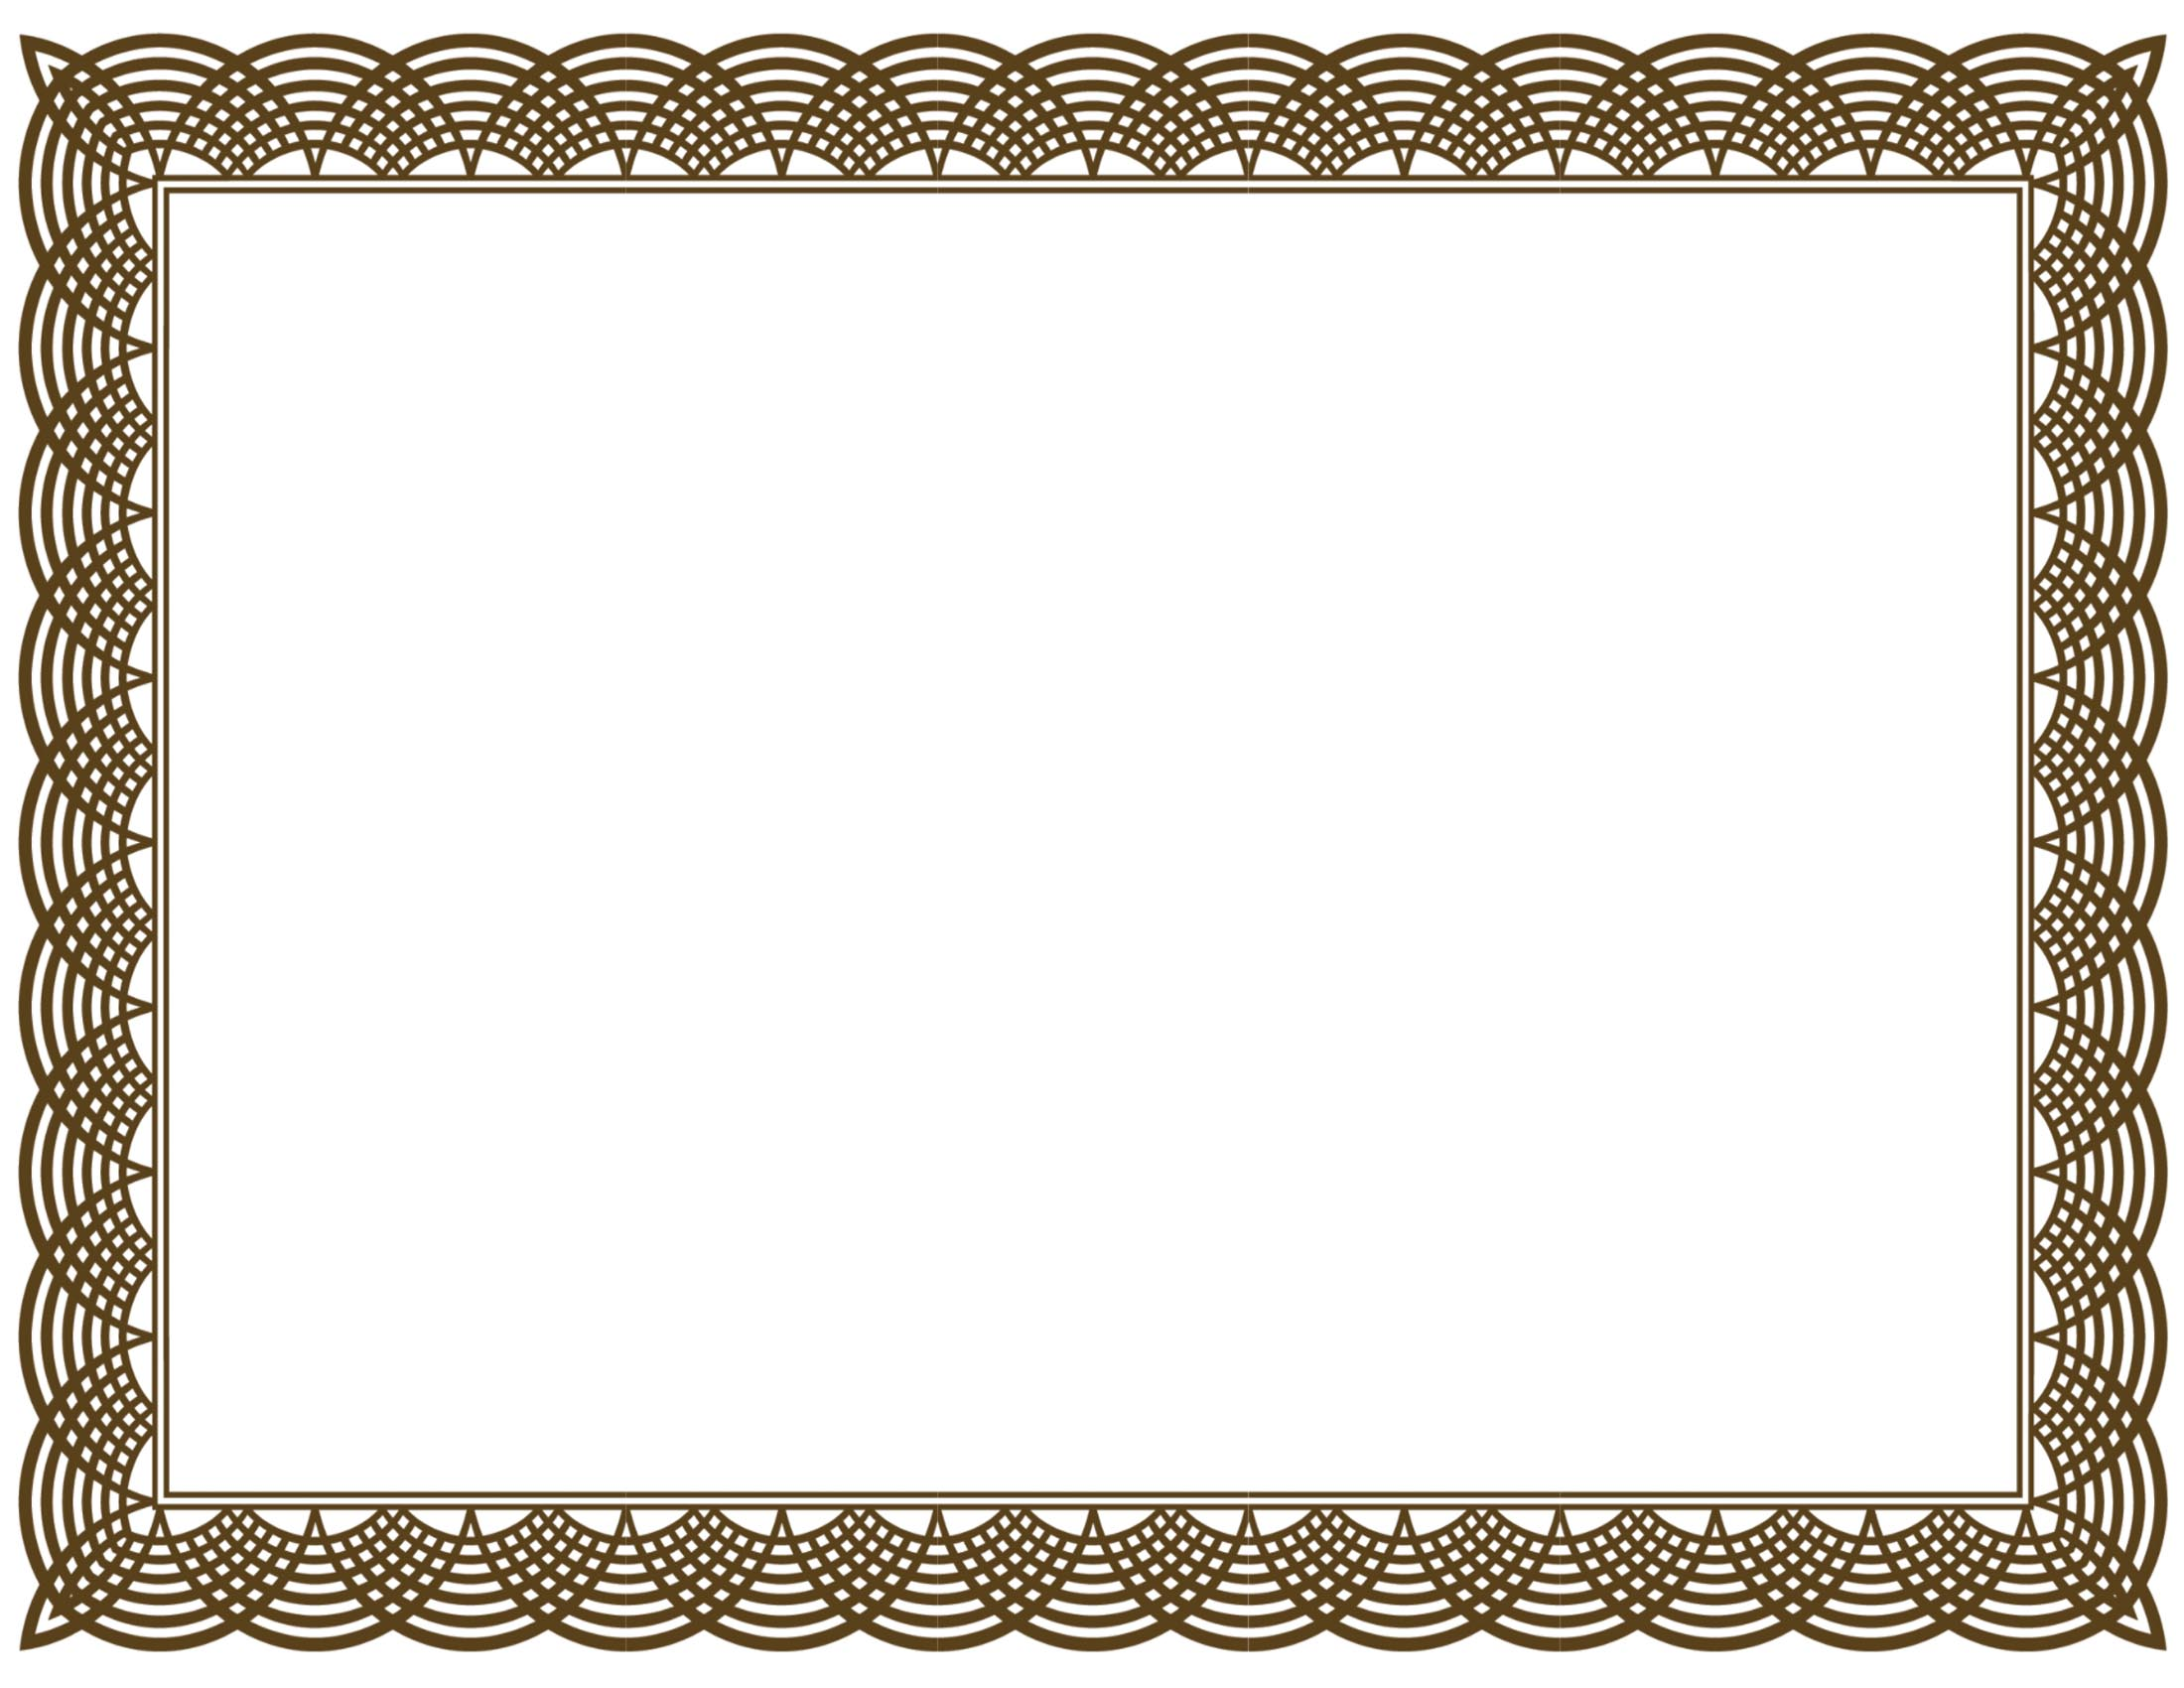 Free Certificate Border, Download Free Clip Art, Free Clip Art on ... png library stock